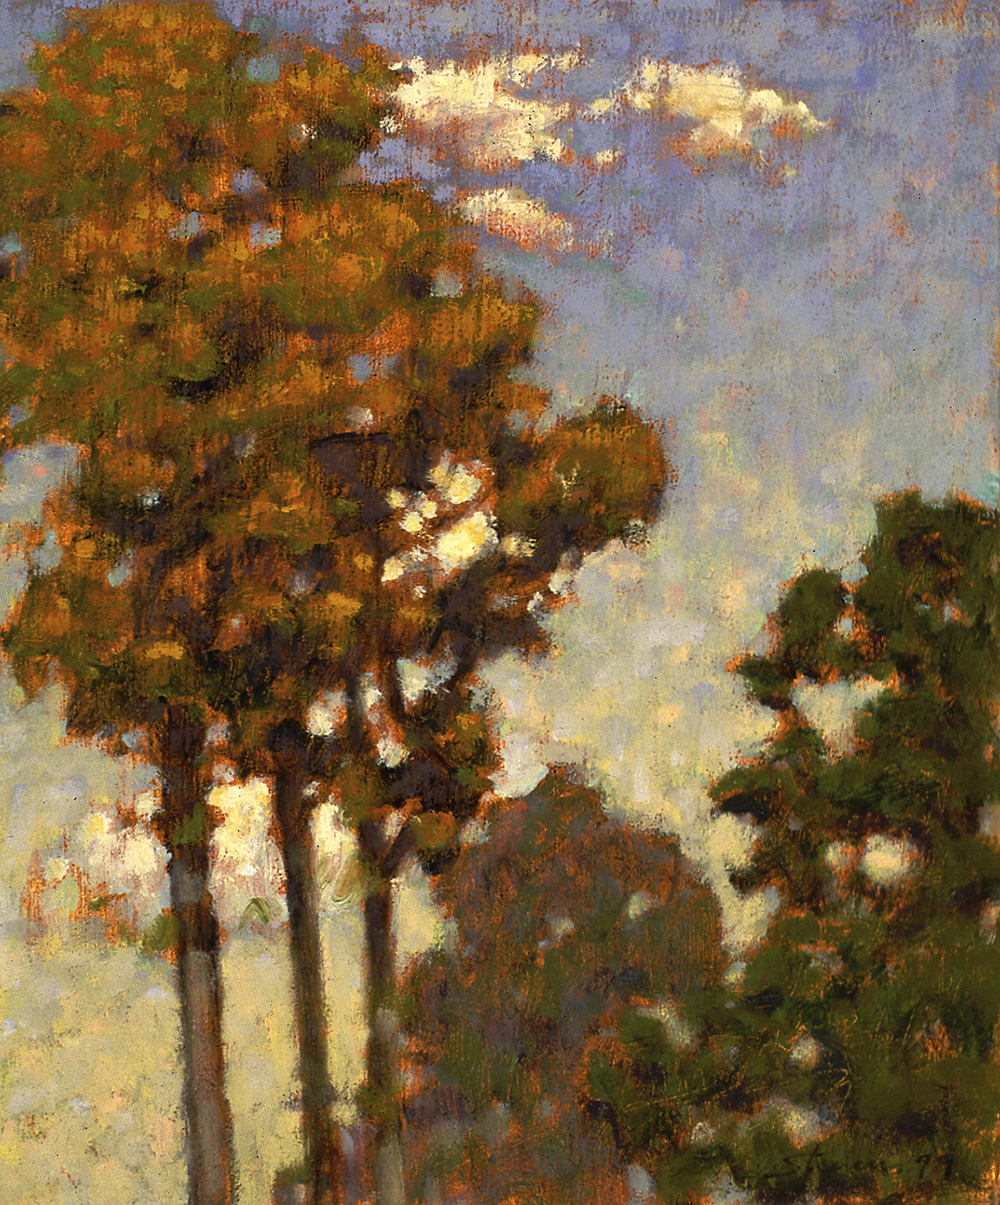 69-99   | oil on canvas | 12 x 10"